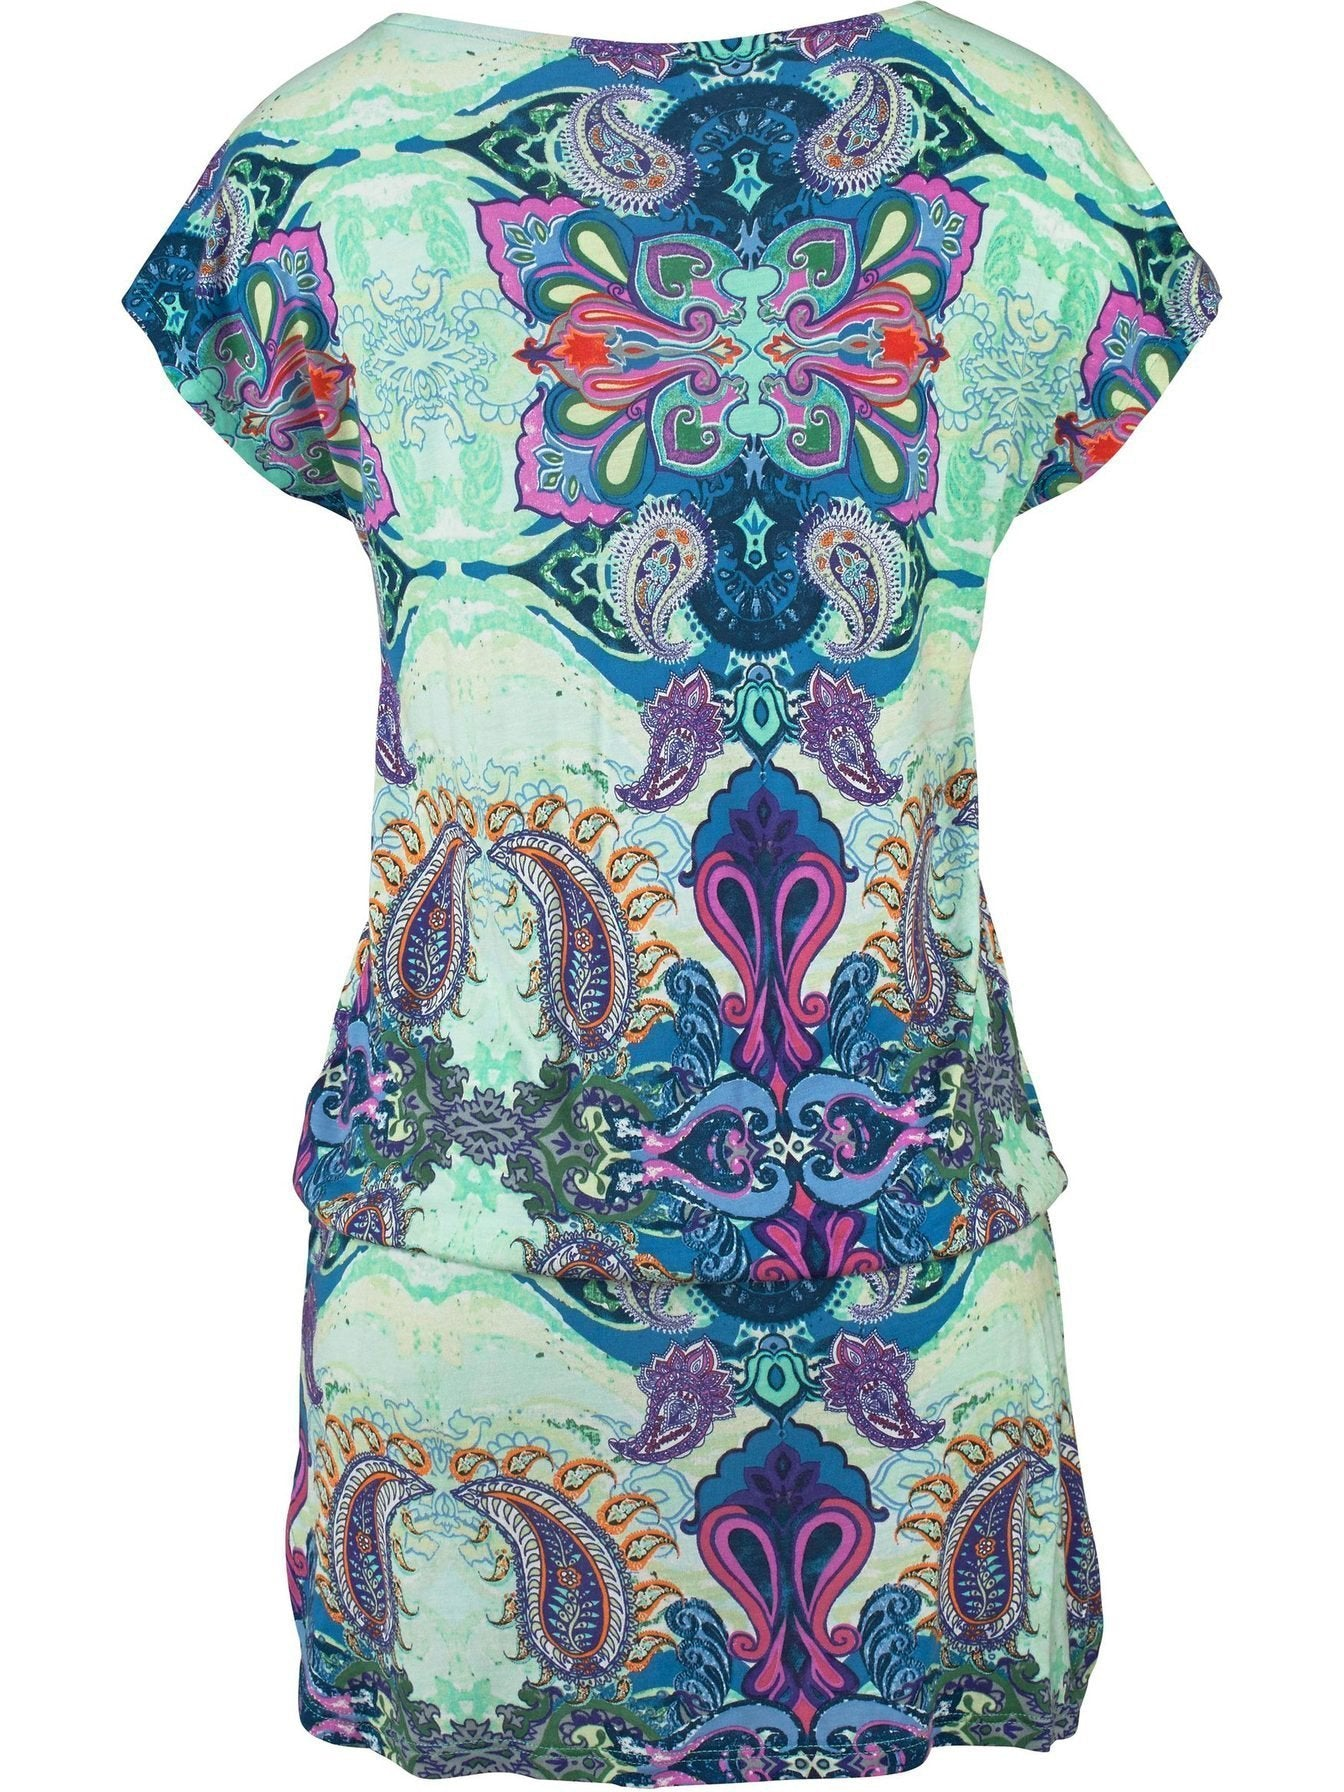 Printed Short-sleeved Beach Dress